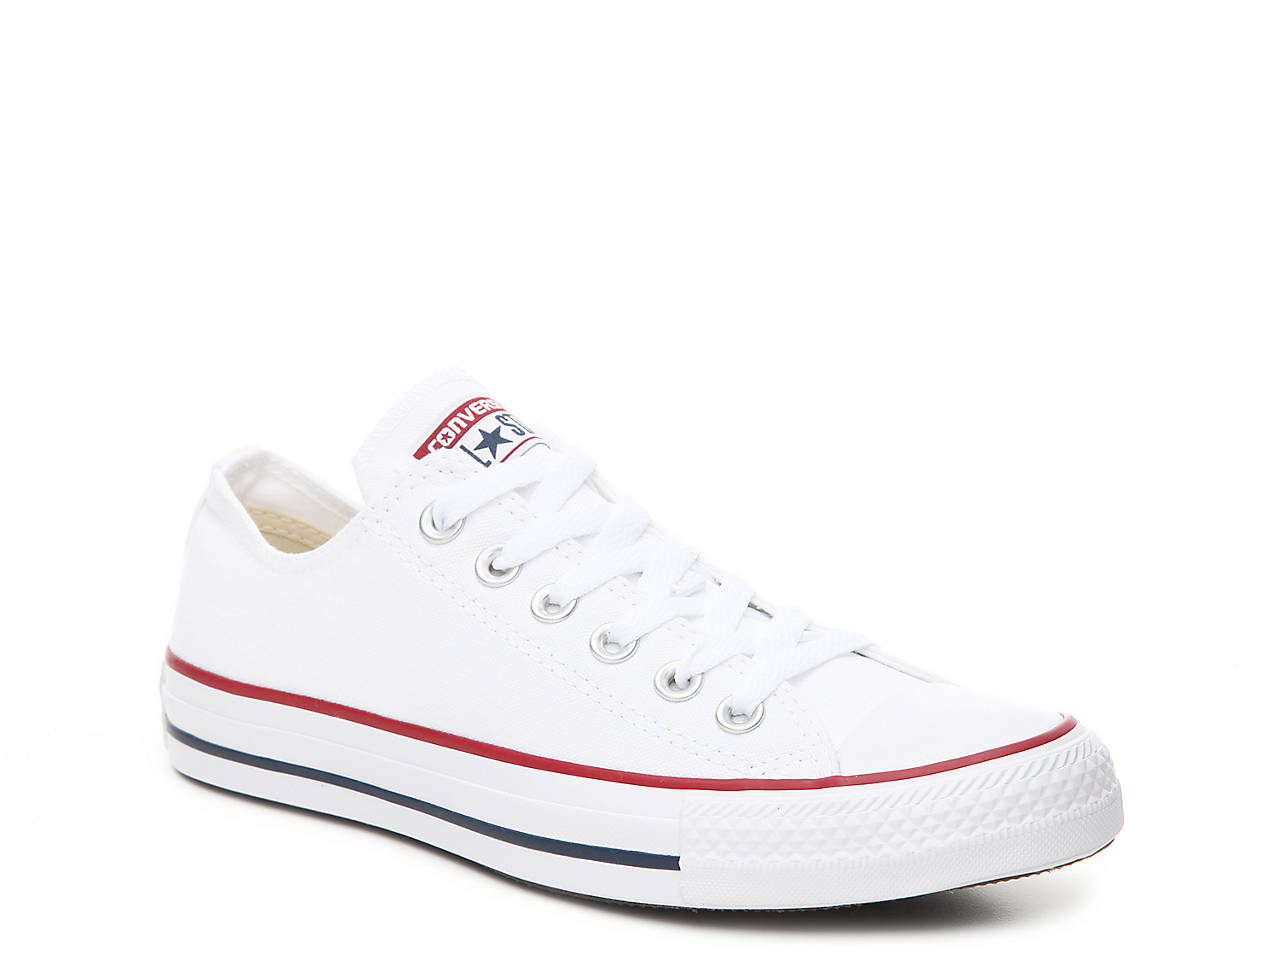 6c2fcf3fccbcbb Converse Chuck Taylor All Star Sneaker - Women s Women s Shoes